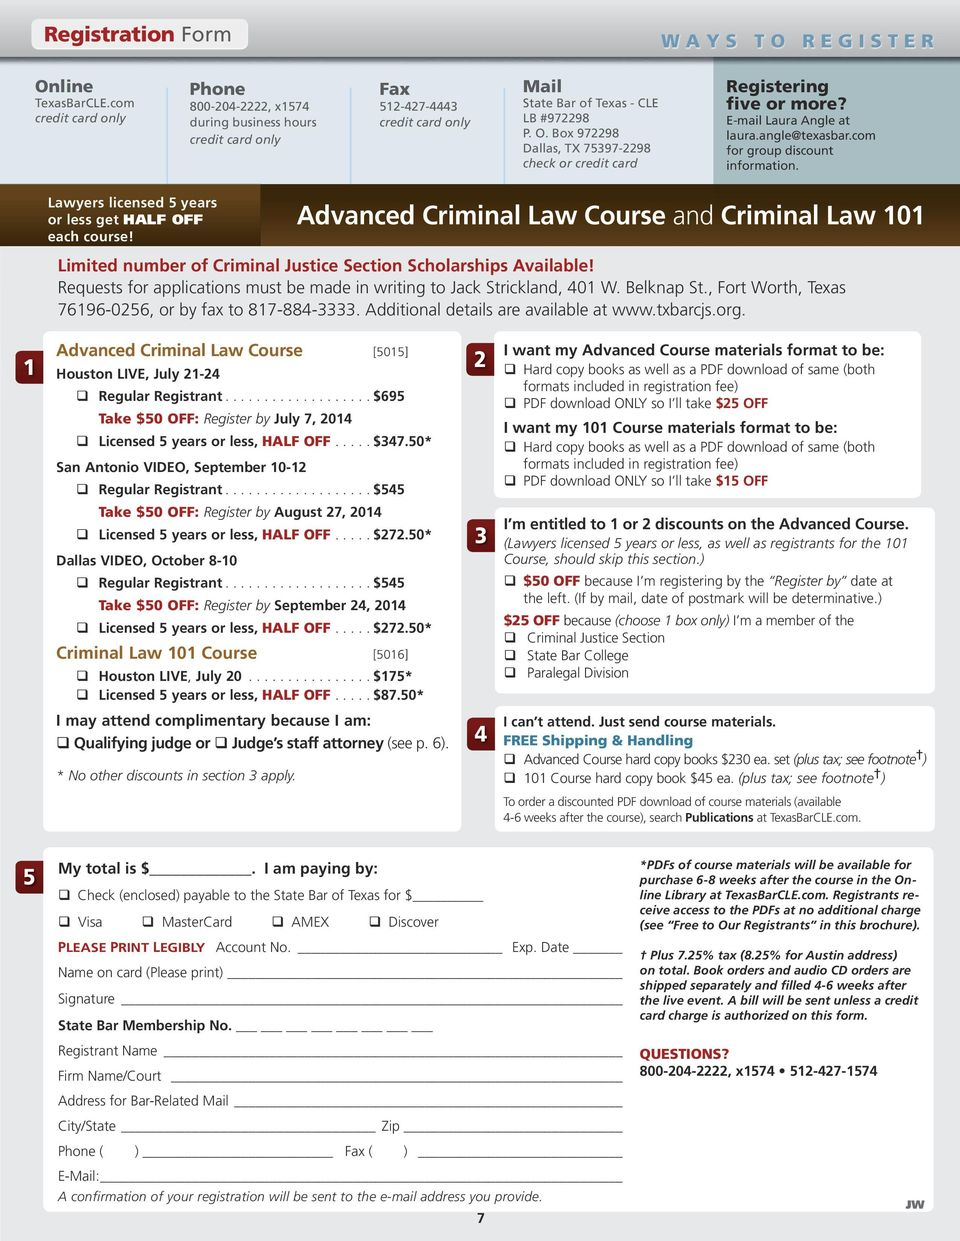 Advanced Criminal Law Course - PDF